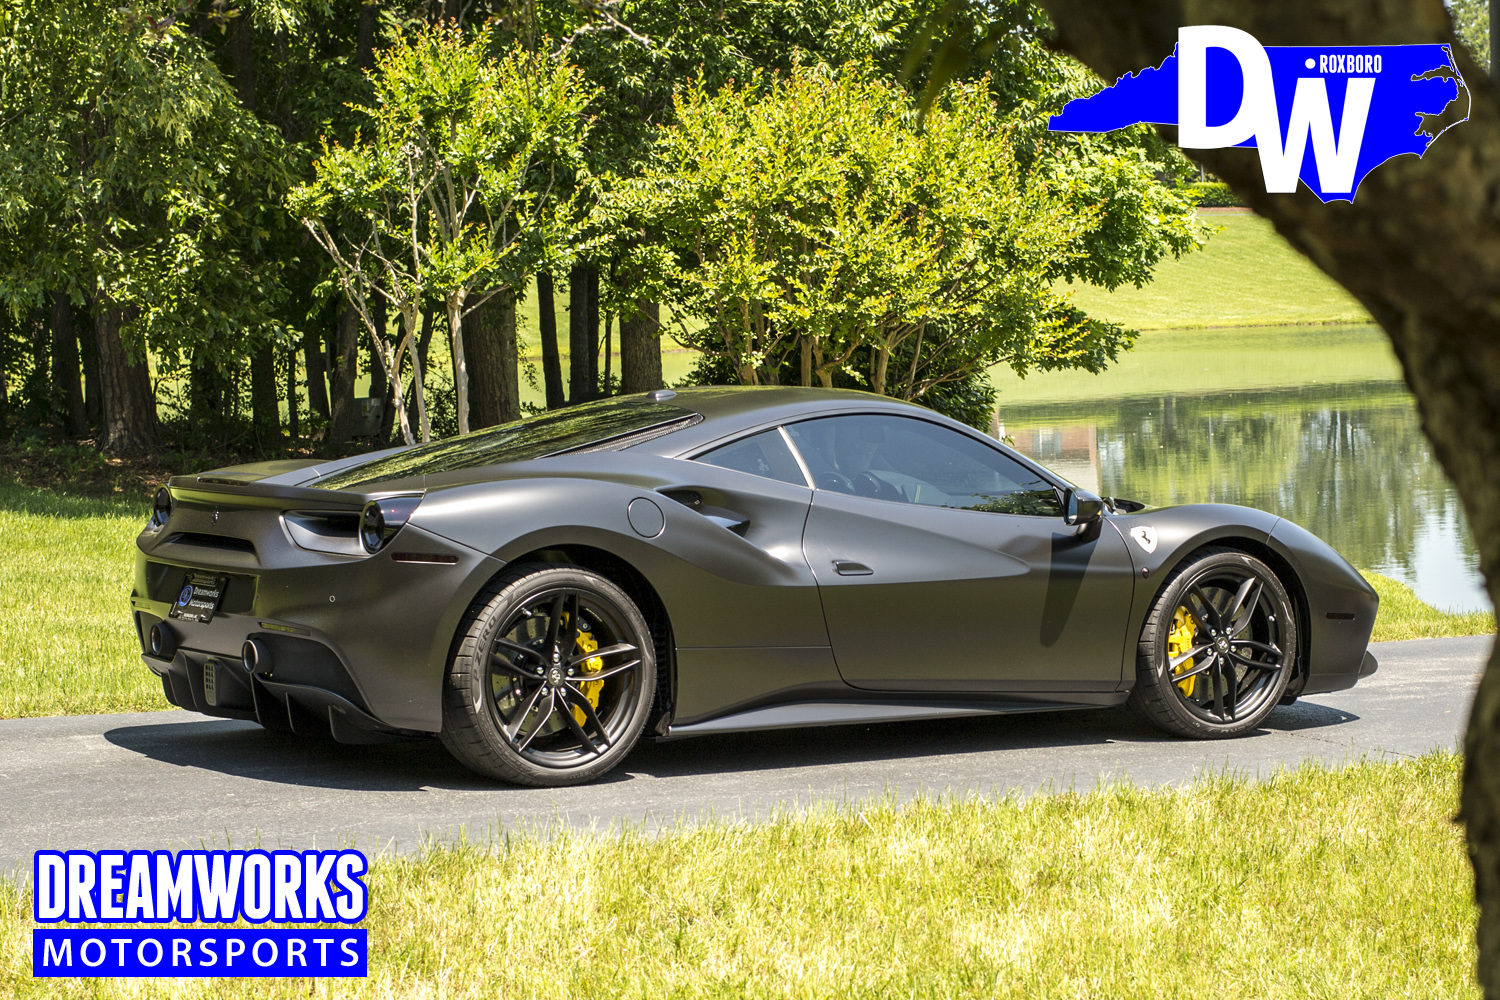 Ferrari_488_Satin_Black_Wrap_Murdered_Out_by_Dreamworks-Motorsports-2.jpg